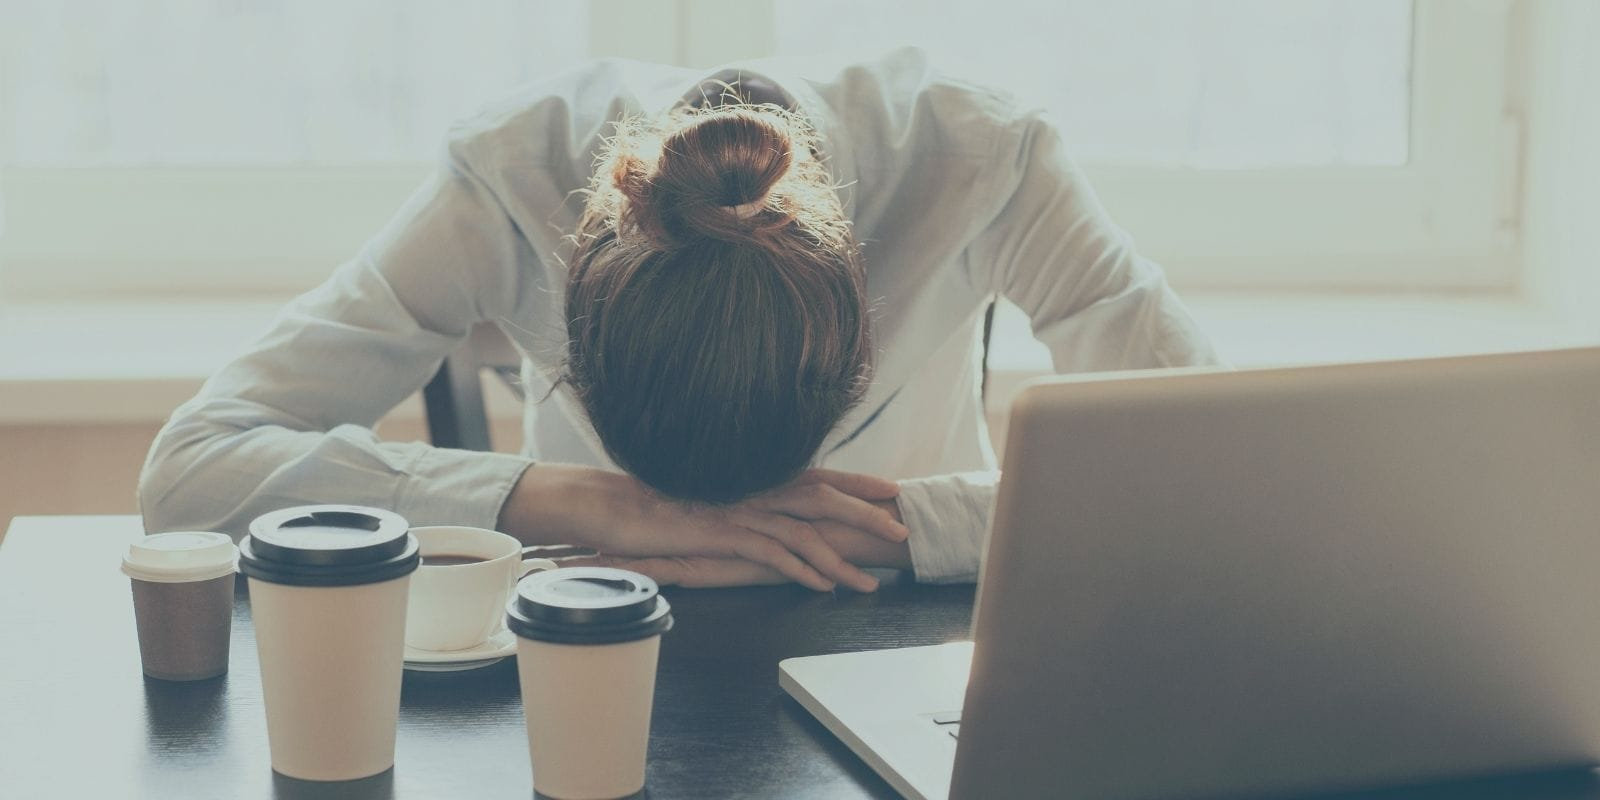 Woman looking tired due to poor sleep habits resting head on desk with coffee cups.